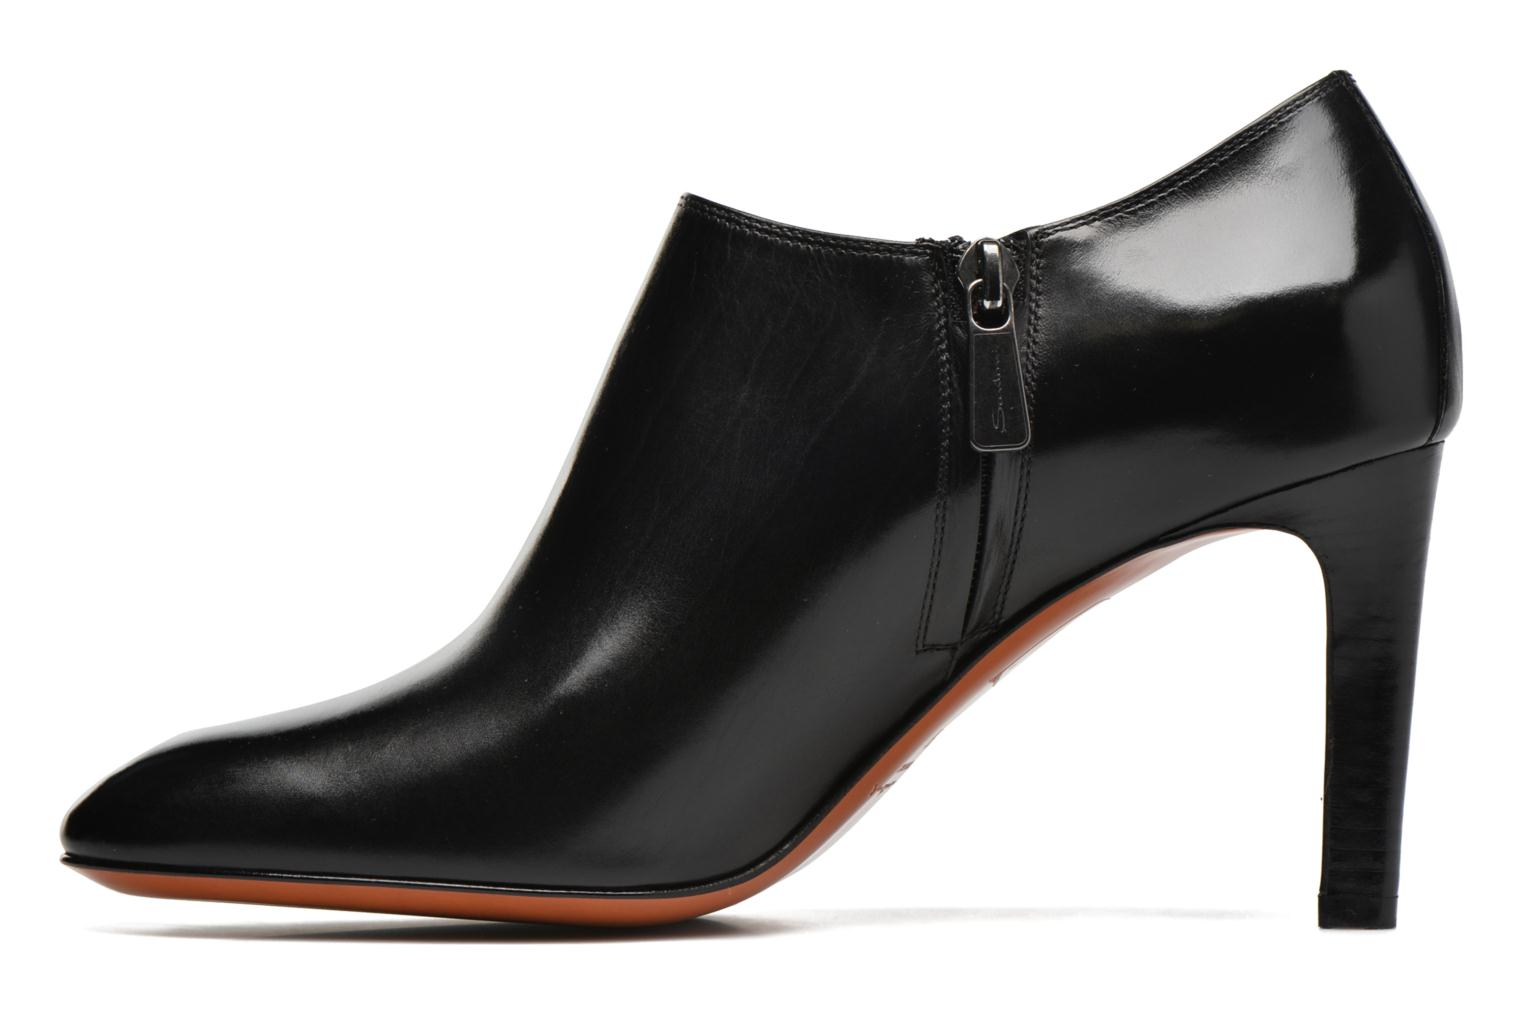 Moss 53259 INVISIBLE MAUVAISE REF Noir 2